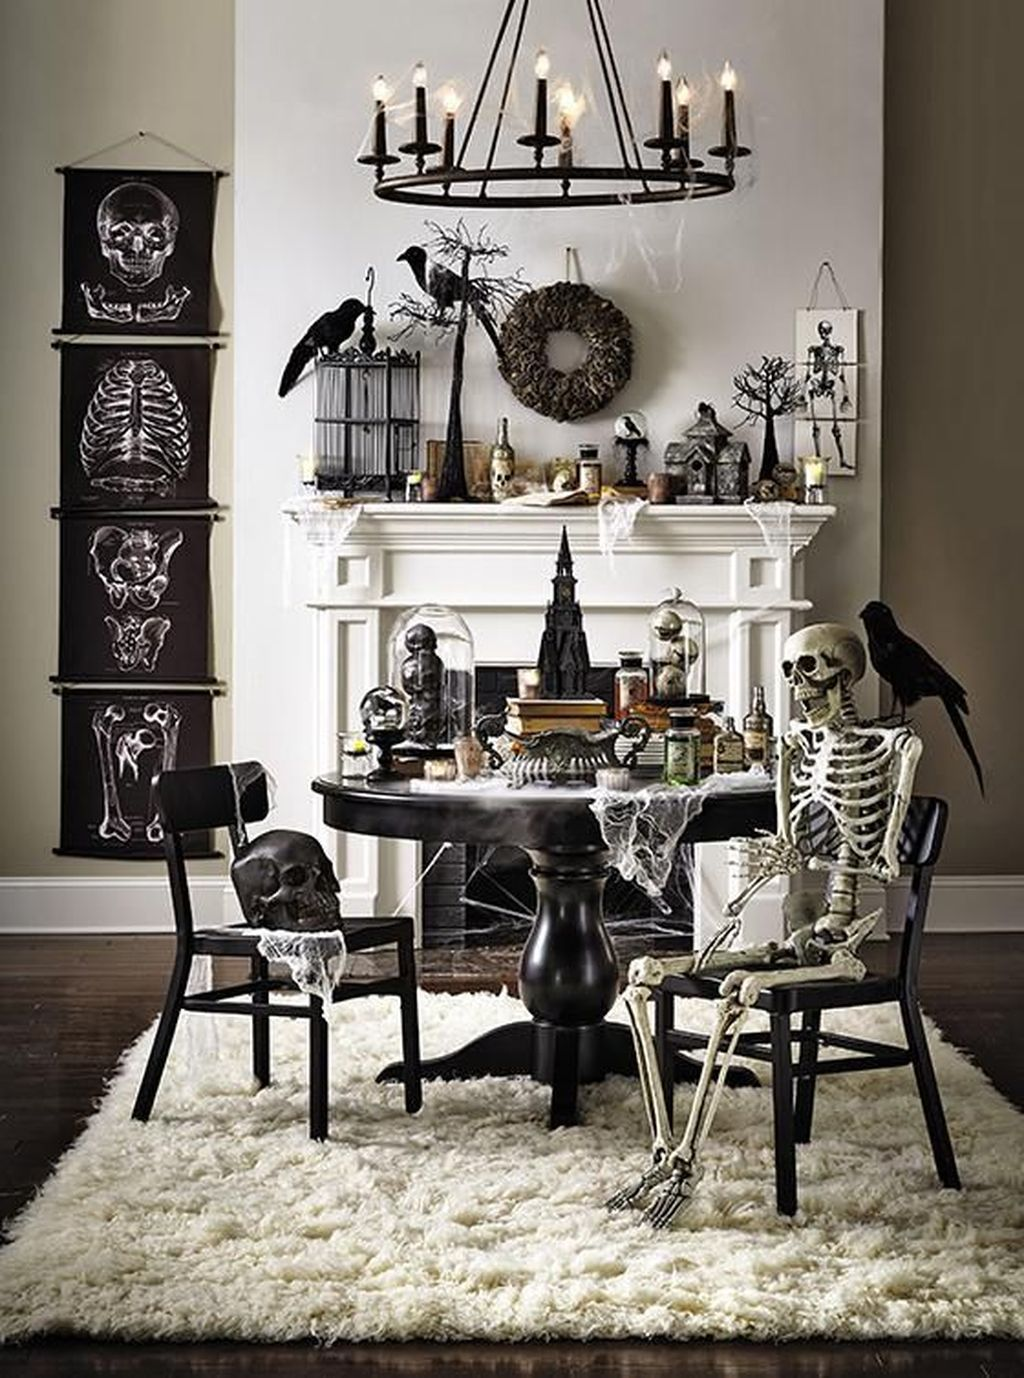 Stunning Black And White Halloween Decor Ideas For Your Home 08